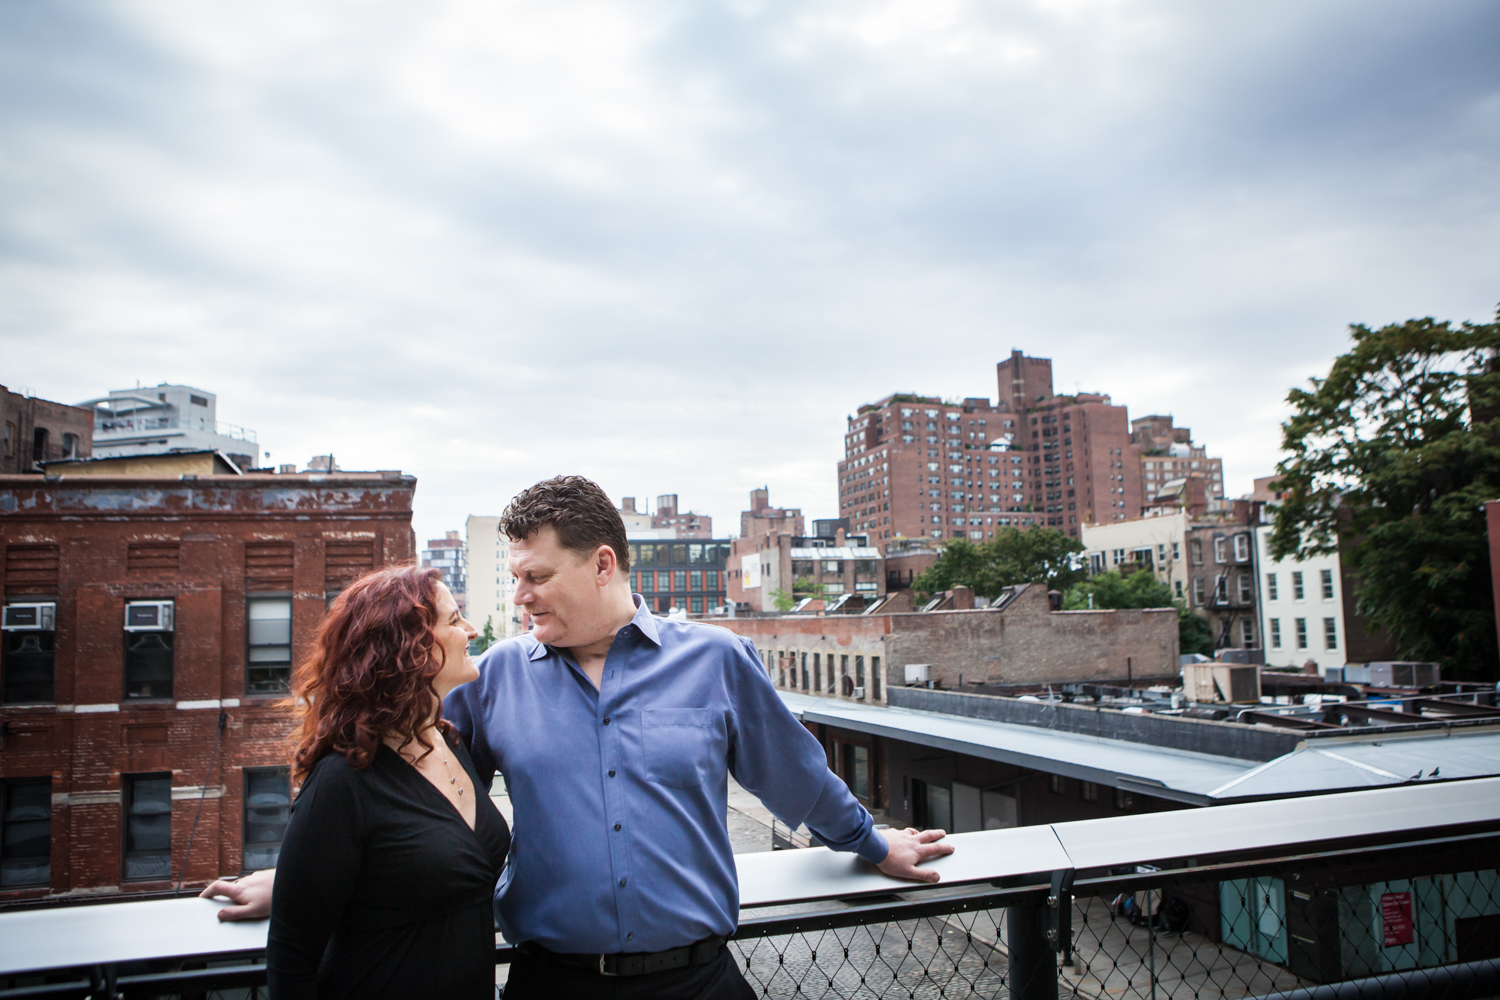 High Line engagement photos of couple with view of Meatpacking District in the background